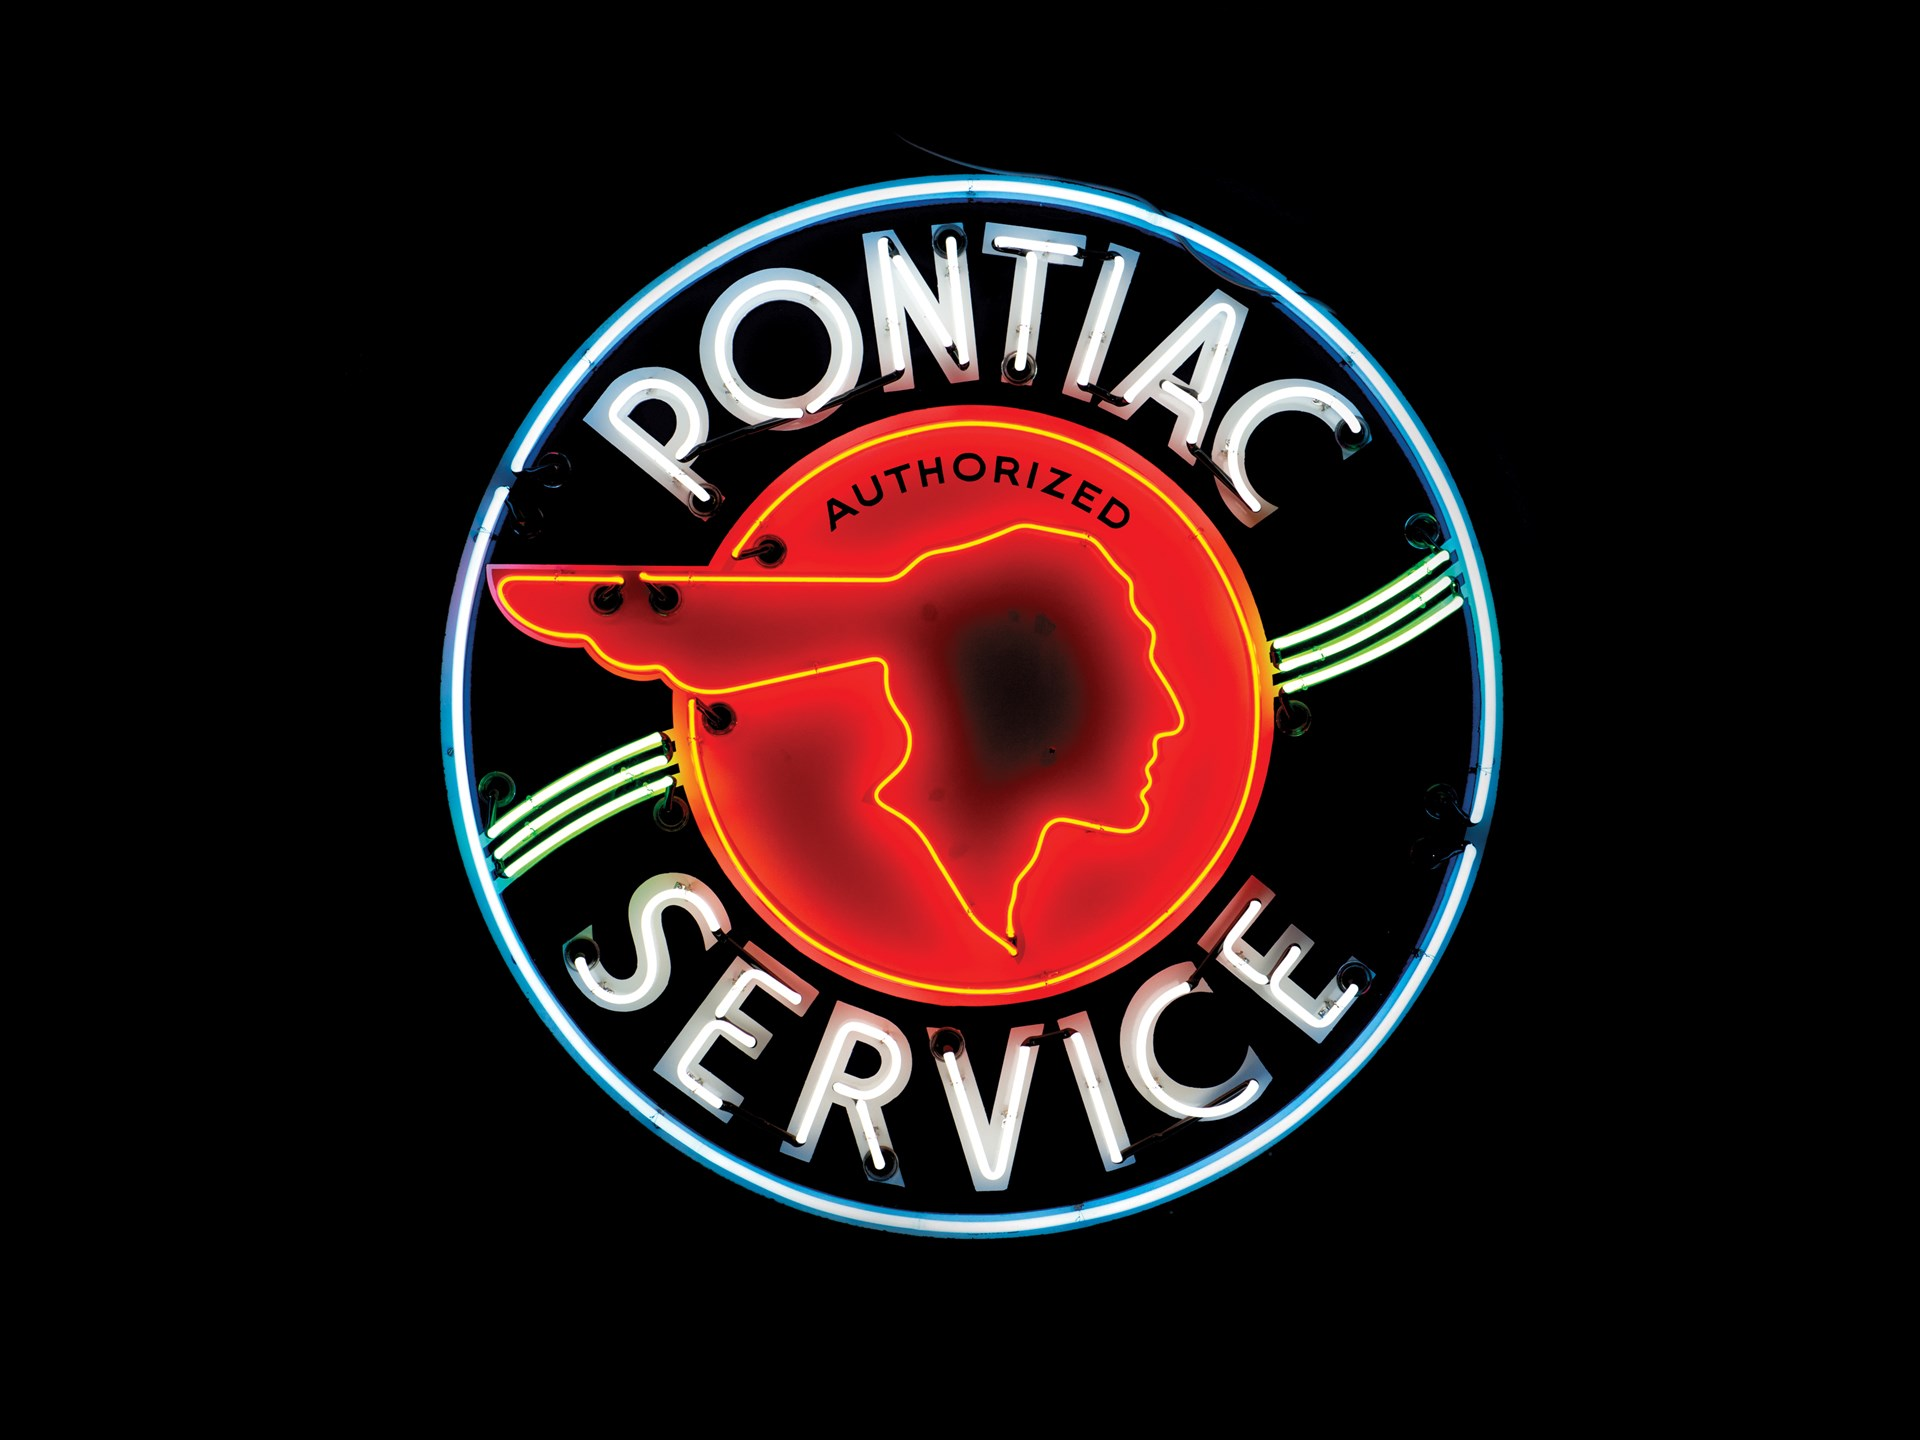 Rm Sotheby S Pontiac Authorized Service Neon Sign The Andrews Collection